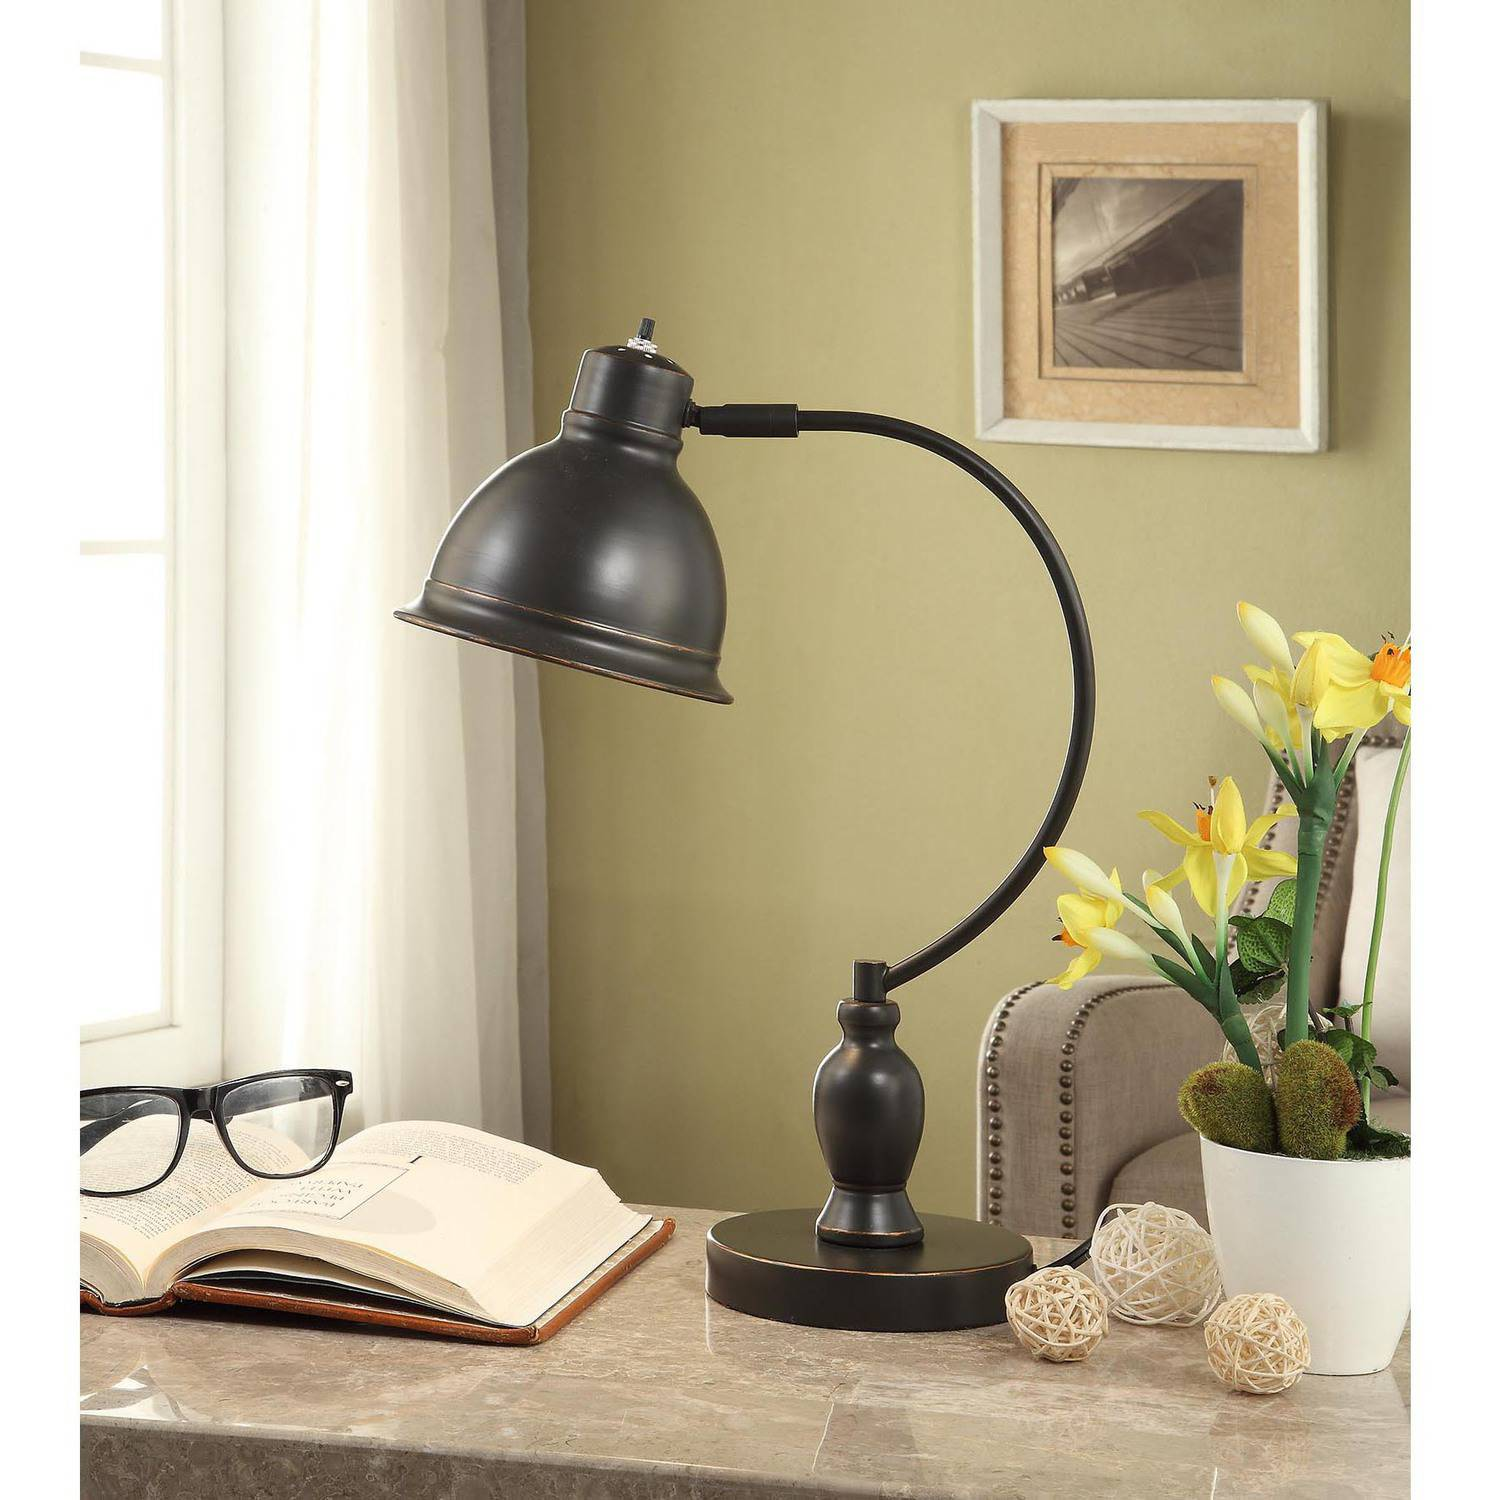 Better Homes and Gardens Traditional Desk Lamp with CFL Bulb, Bronze